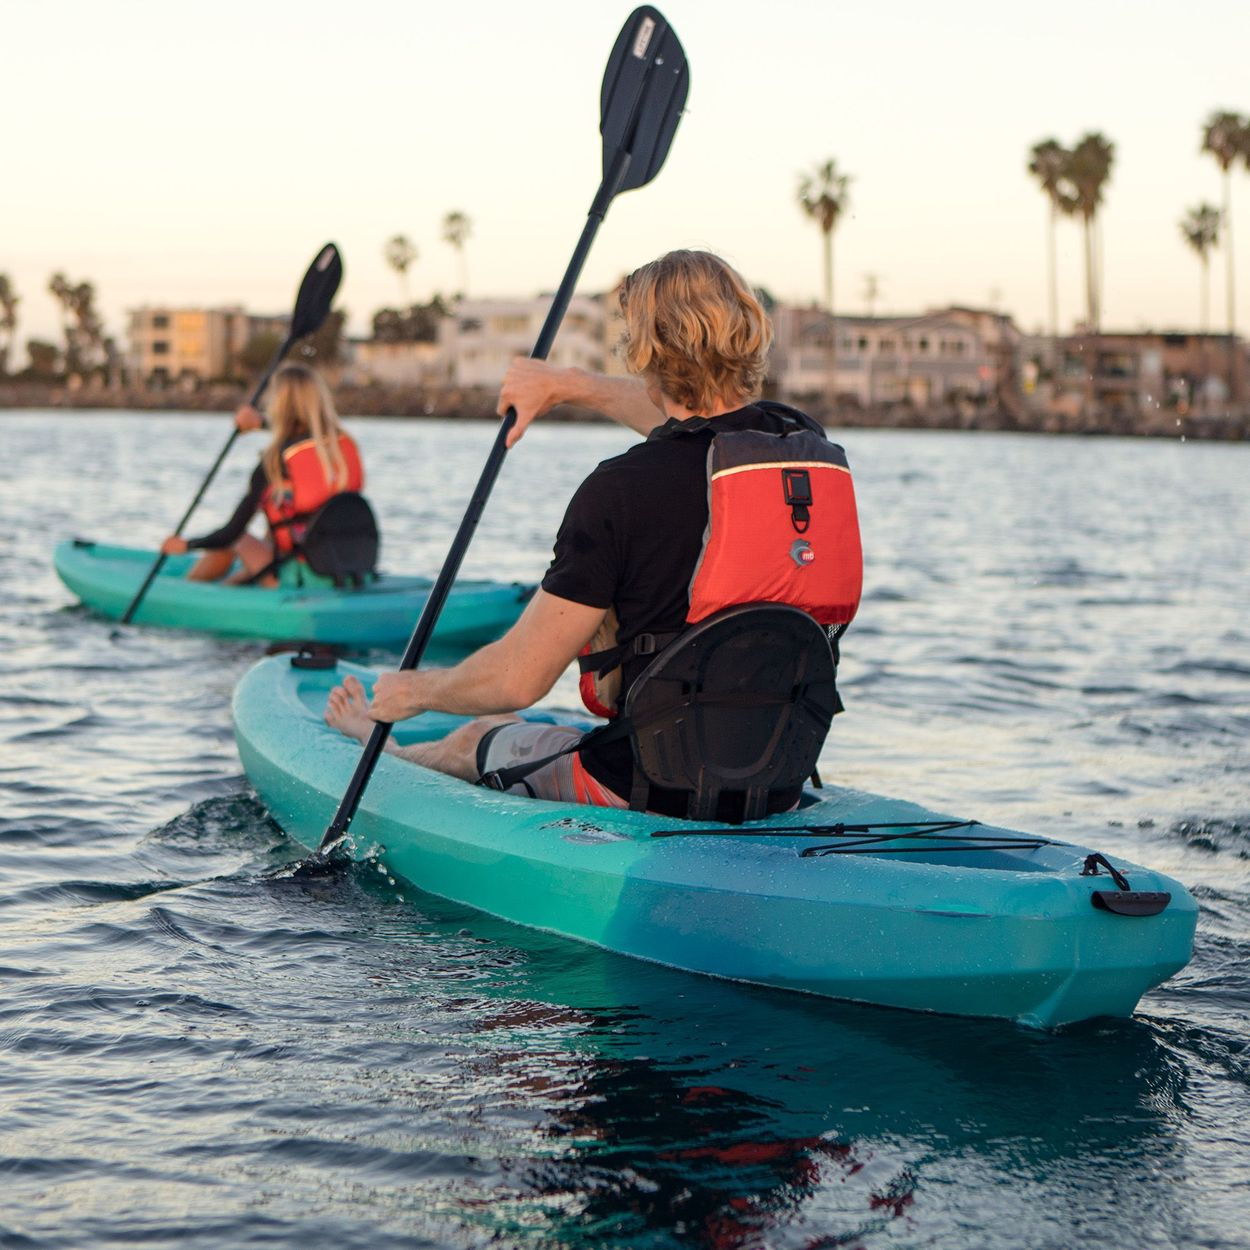 A man and a woman kayaking away from the camera with palm trees and buildings in the background past the water. Each person on the kayaks have life jackets that are red and black.